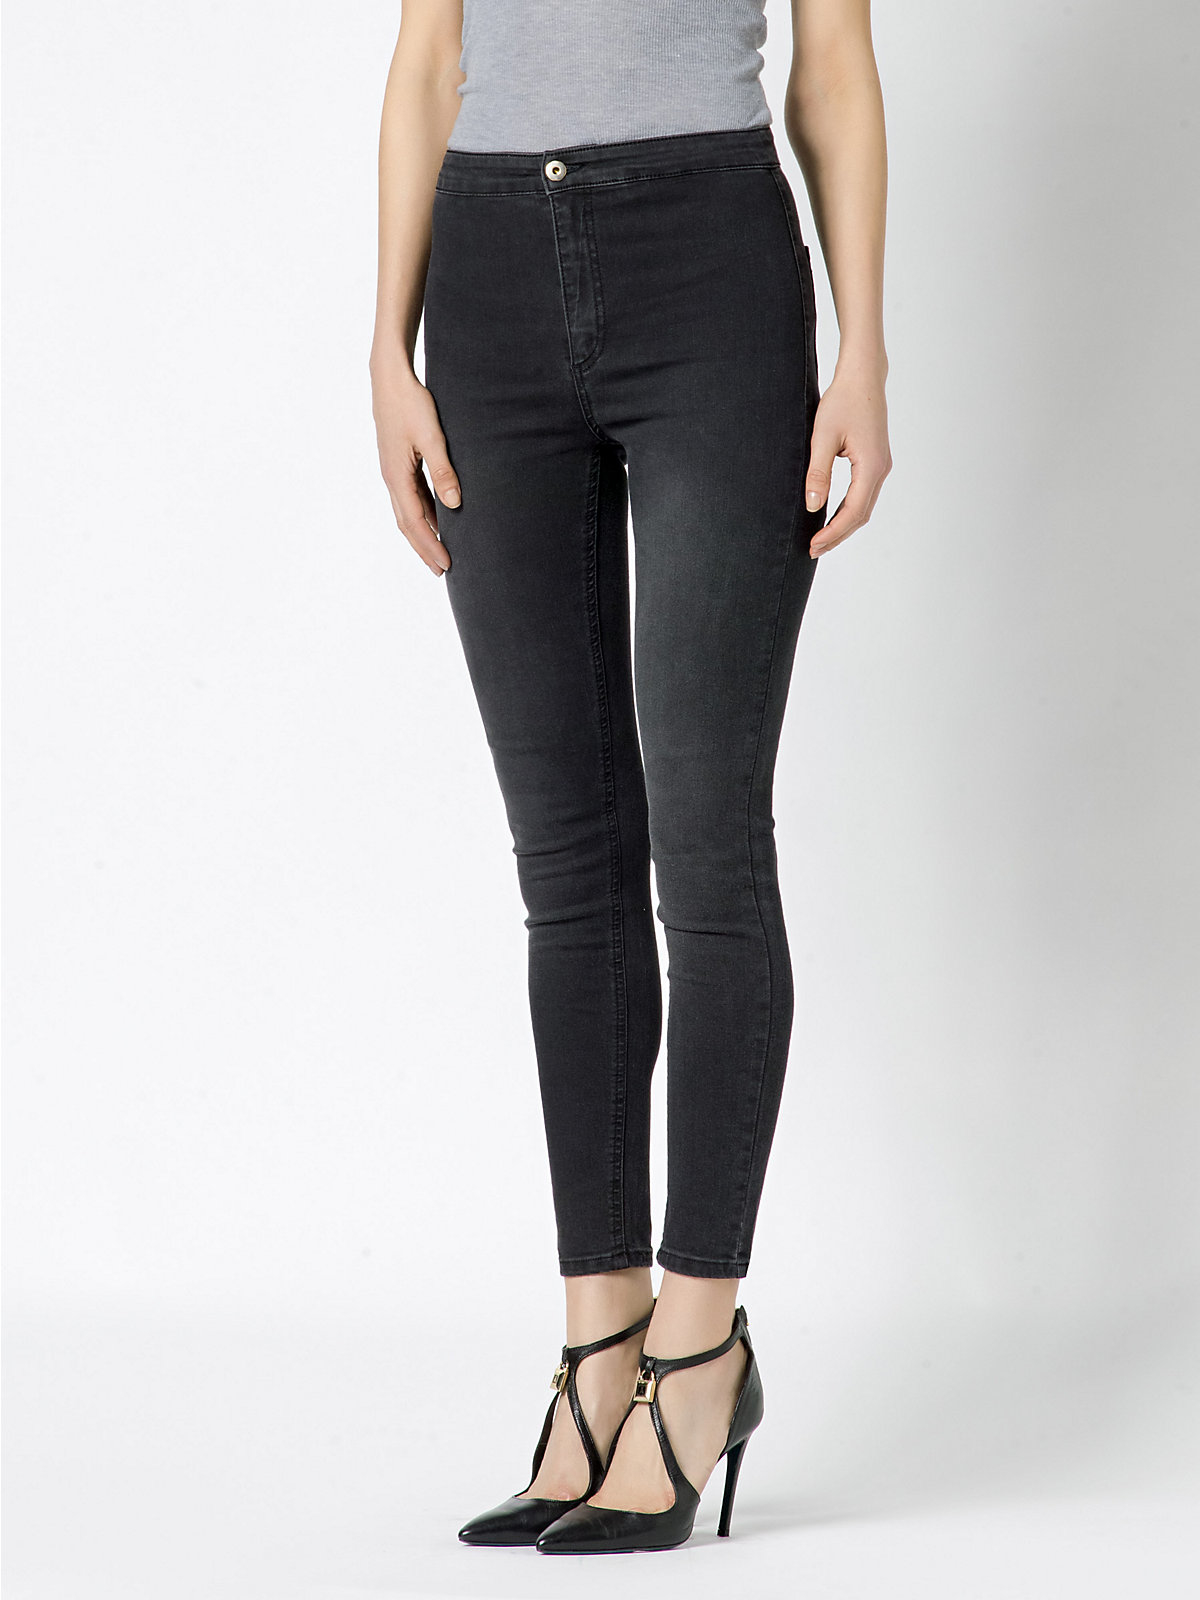 Available In Black High Waisted Skinny Jeans 2 Pockets Great Stretch 31